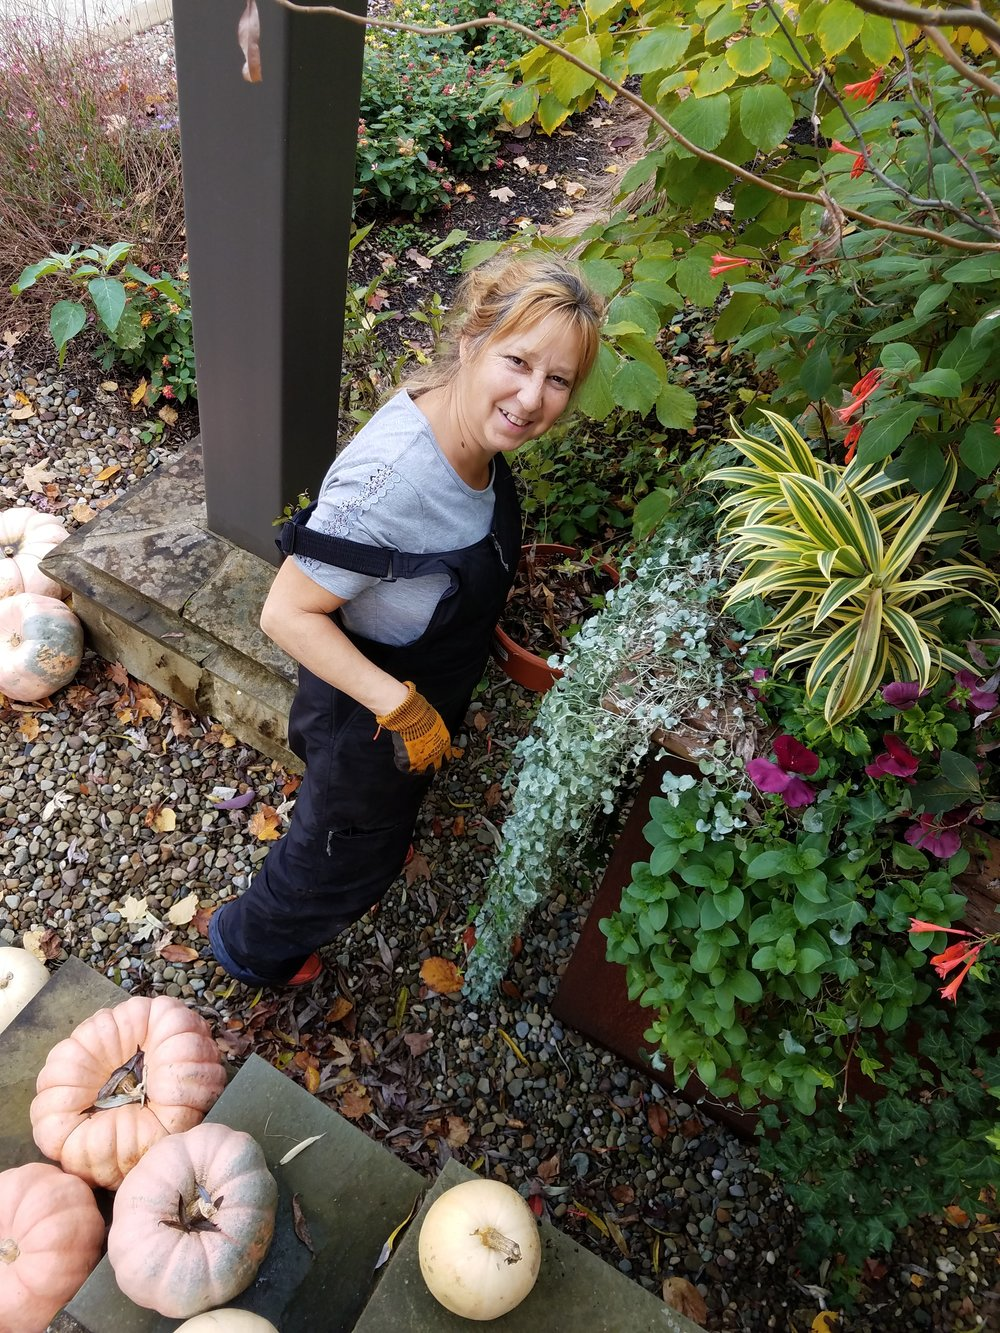 Certified Arborist /Landscape Designer/Farmer - Carol Palansky has over 28 years of experience and all the success stories of her clients that have had a established working relationship with her through the years! Above are just a few examples of the versatility scope, and range of her designs.The initial consult always is about getting to know your style! Is it whimsical or formal? Is it practical or over-the-top? Is it for a one-time event or is it to establish a timeless year after year display of fragrance and color? Carol listens carefully and consults before the work gets started. Suggestions are made throughout the design process and are based upon proper soil tests and on your environment. Voila! The connection is made and the right fit for you is then created!